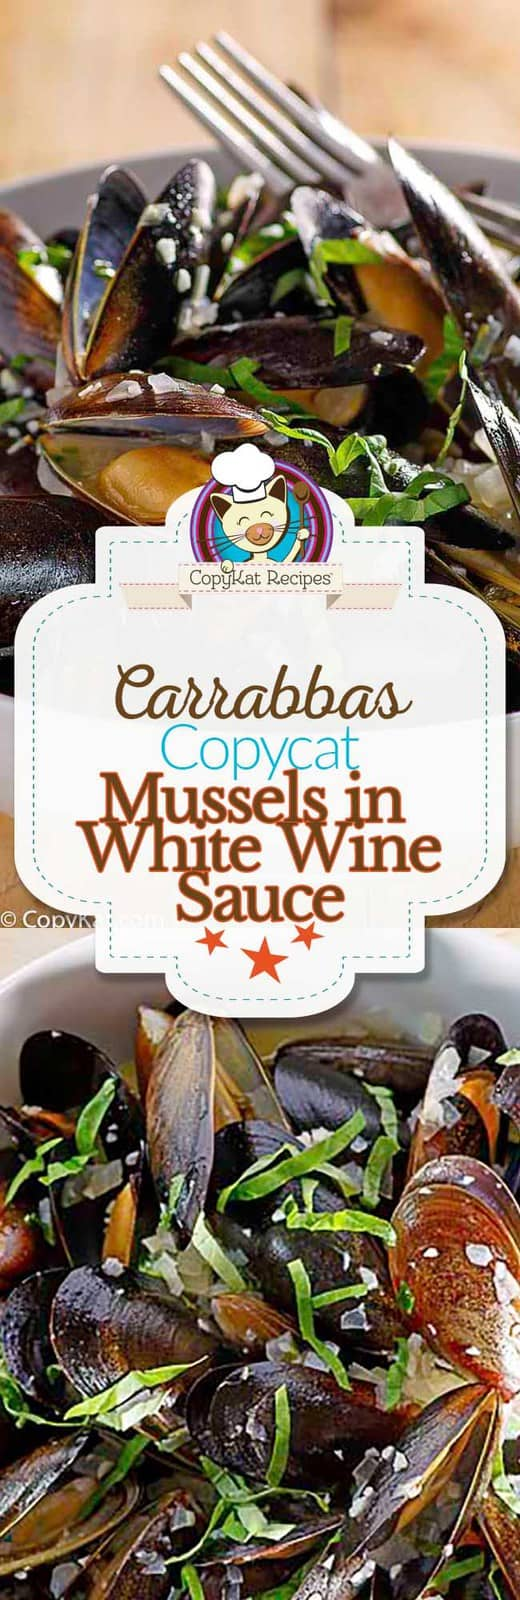 Recreate Carrabbas Mussels with White Wine Sauce at home with this copycat recipe.